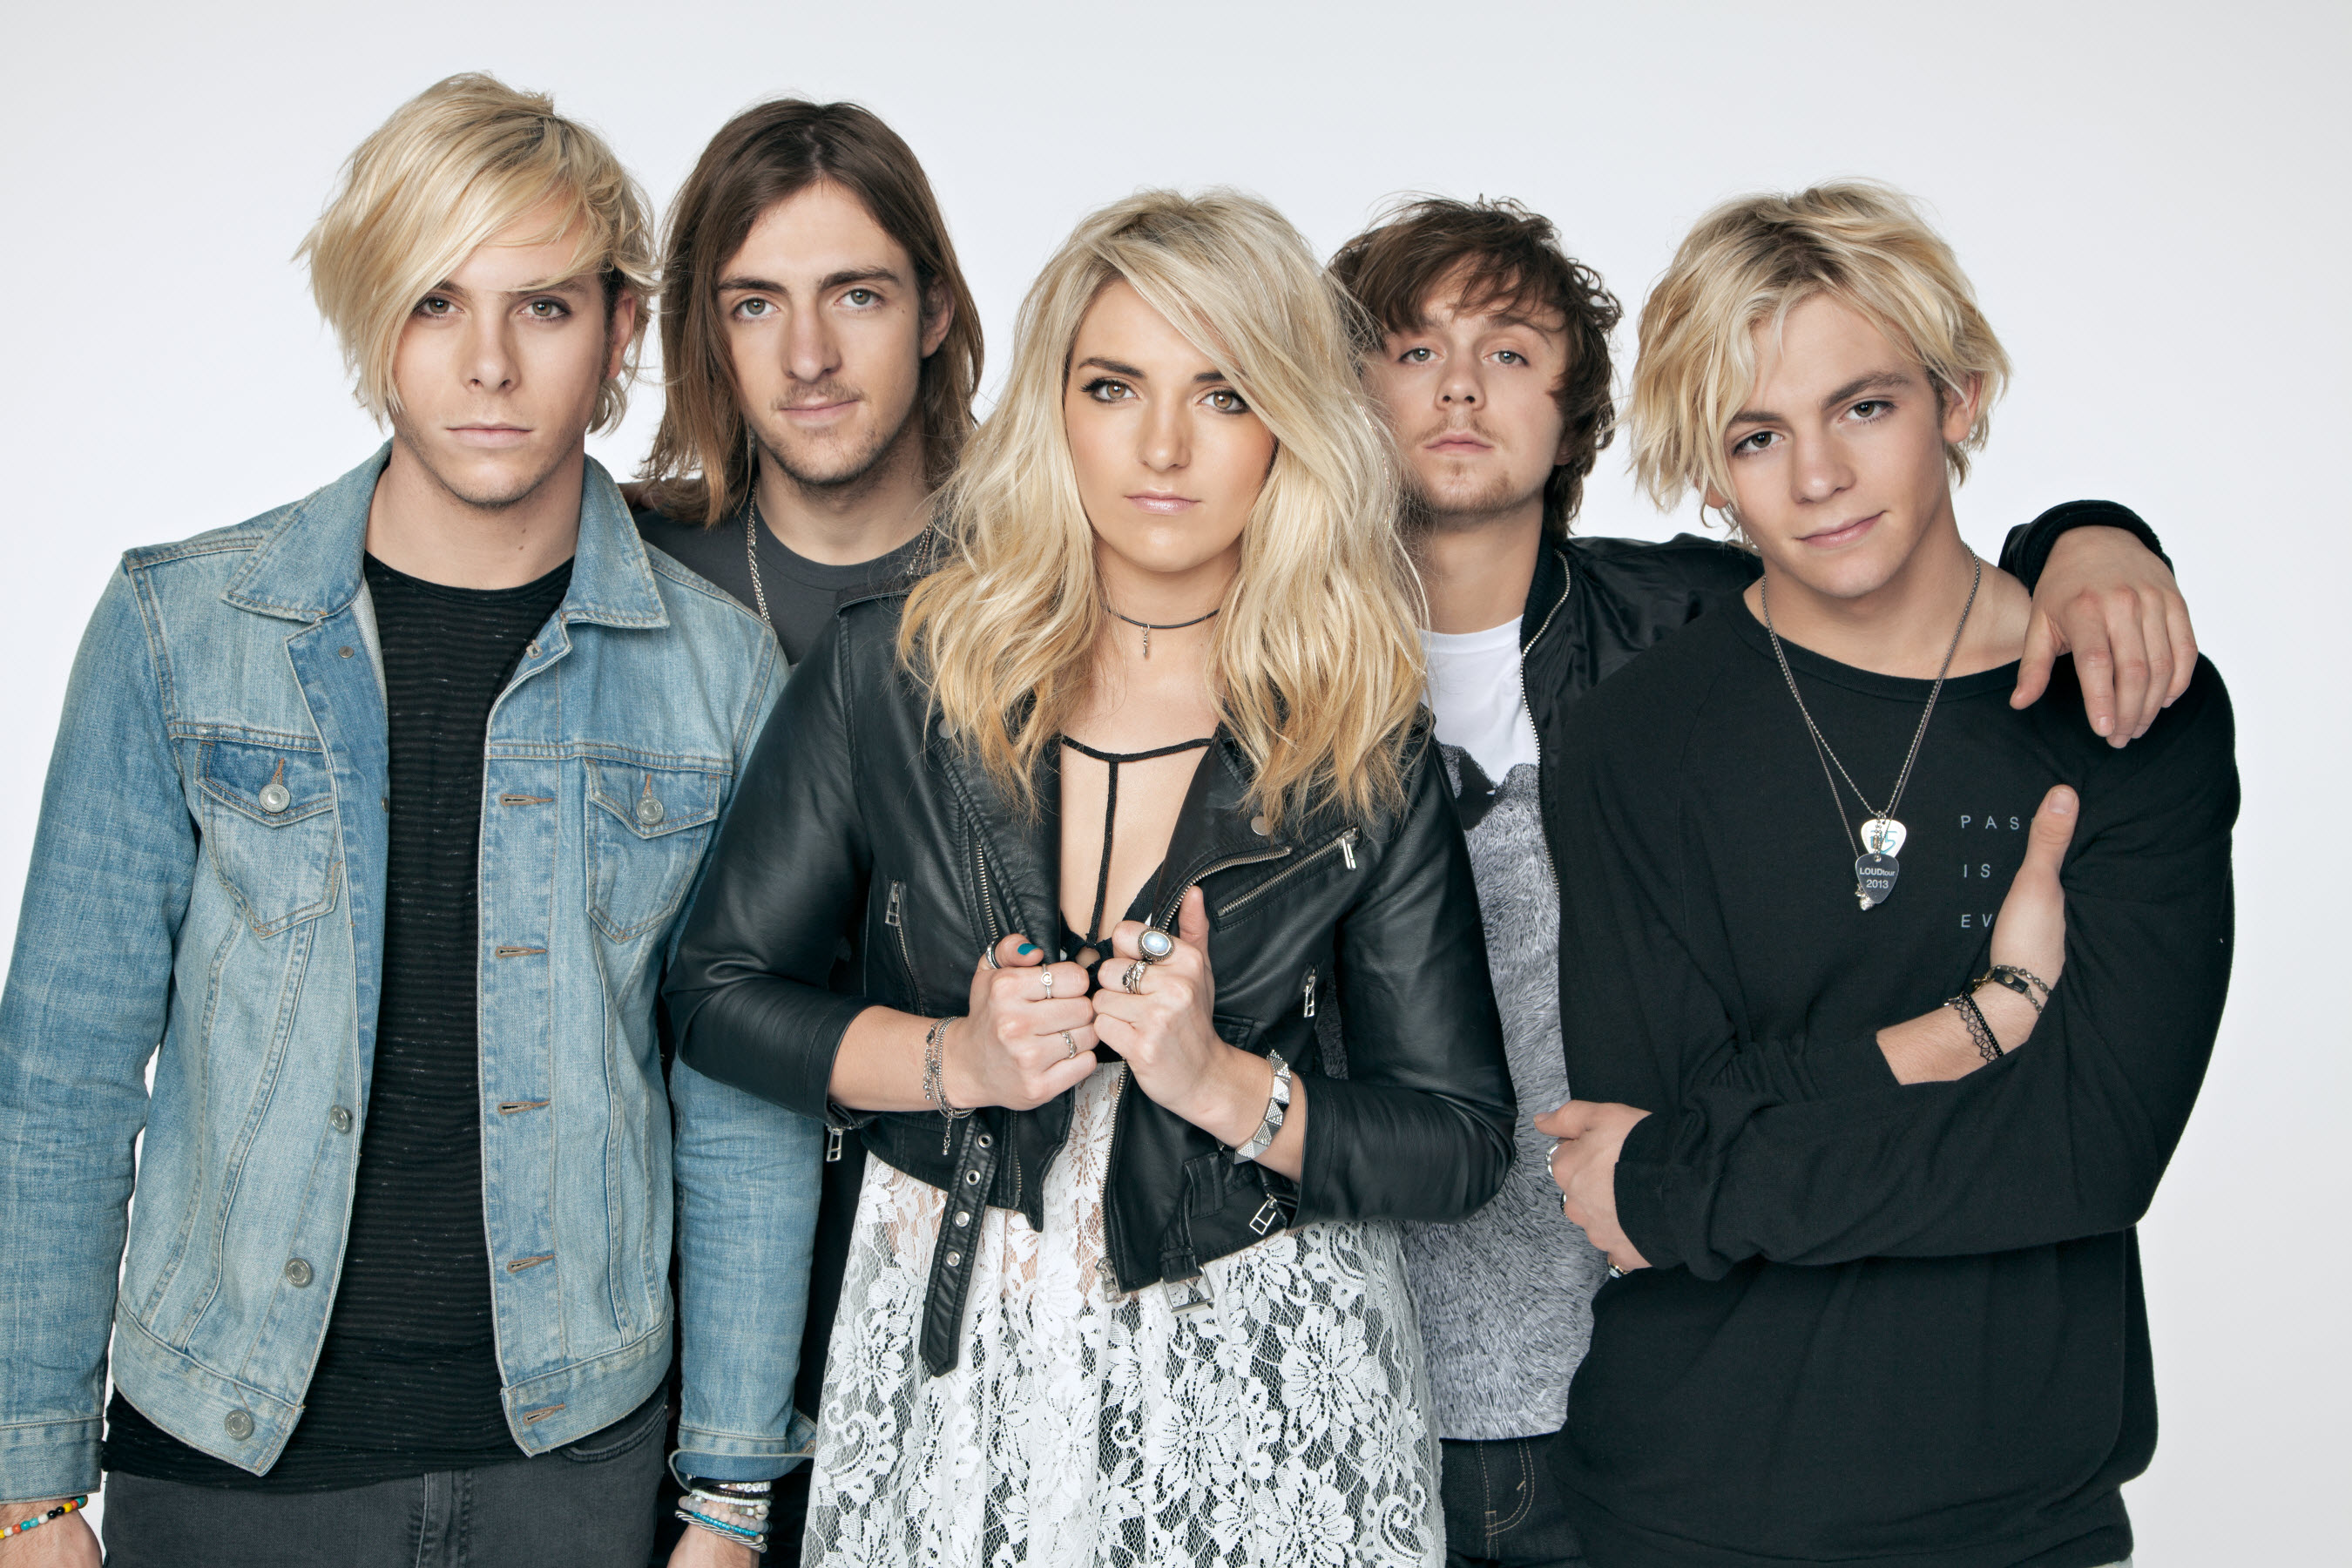 R5 Rocket To Number 1 with World Tour, Hit Single & GMA Performance (@ ...